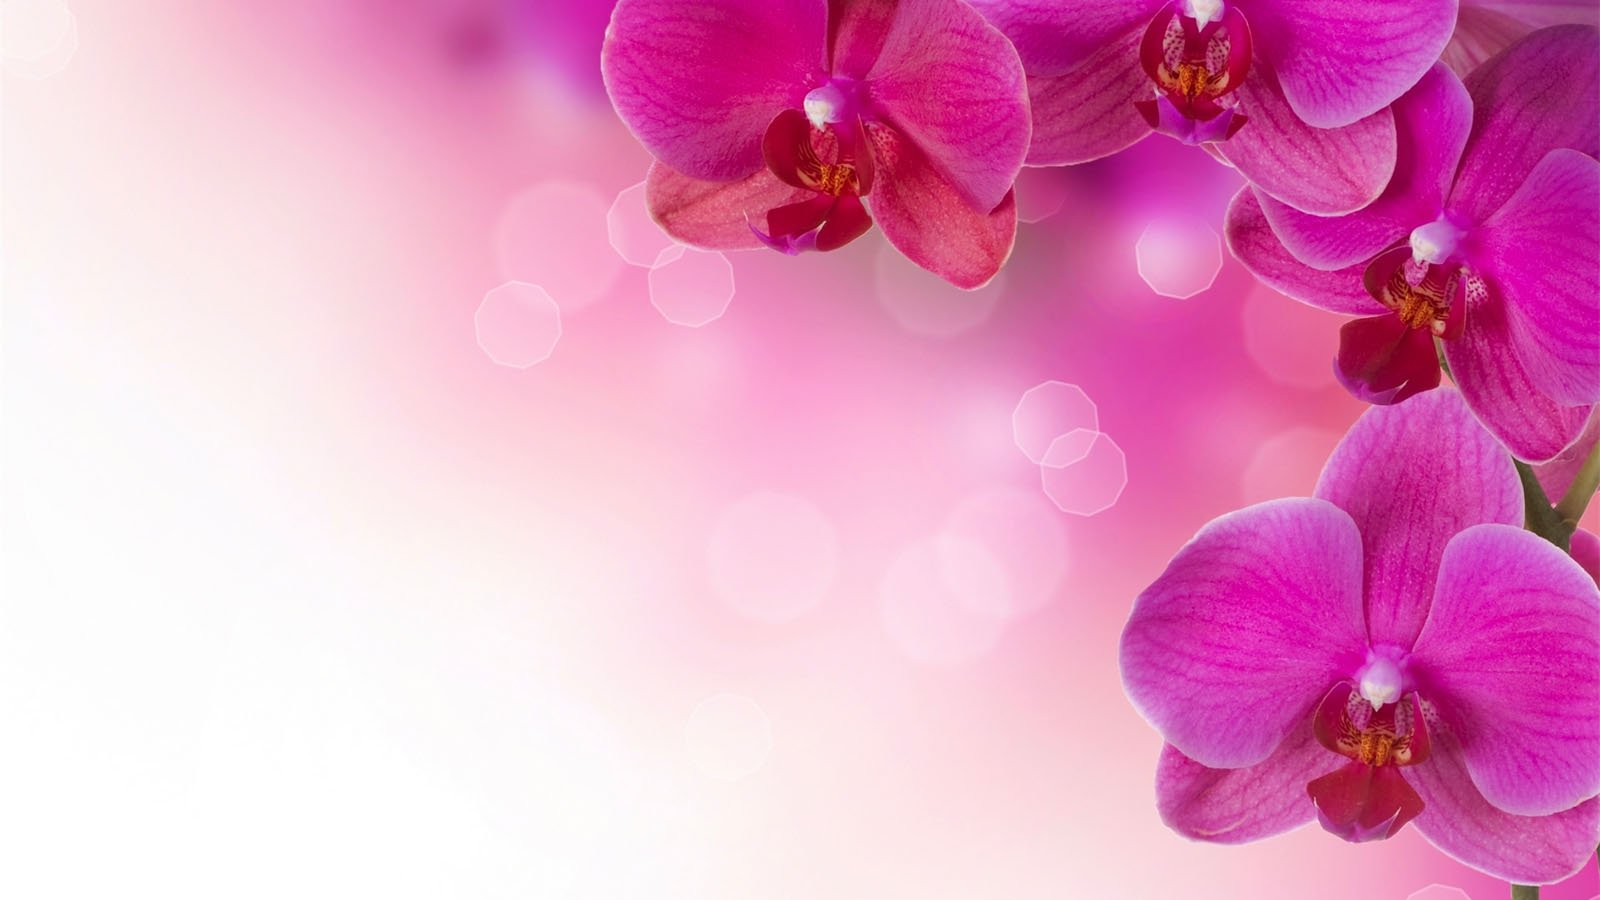 Pink wallpapers 1600x900